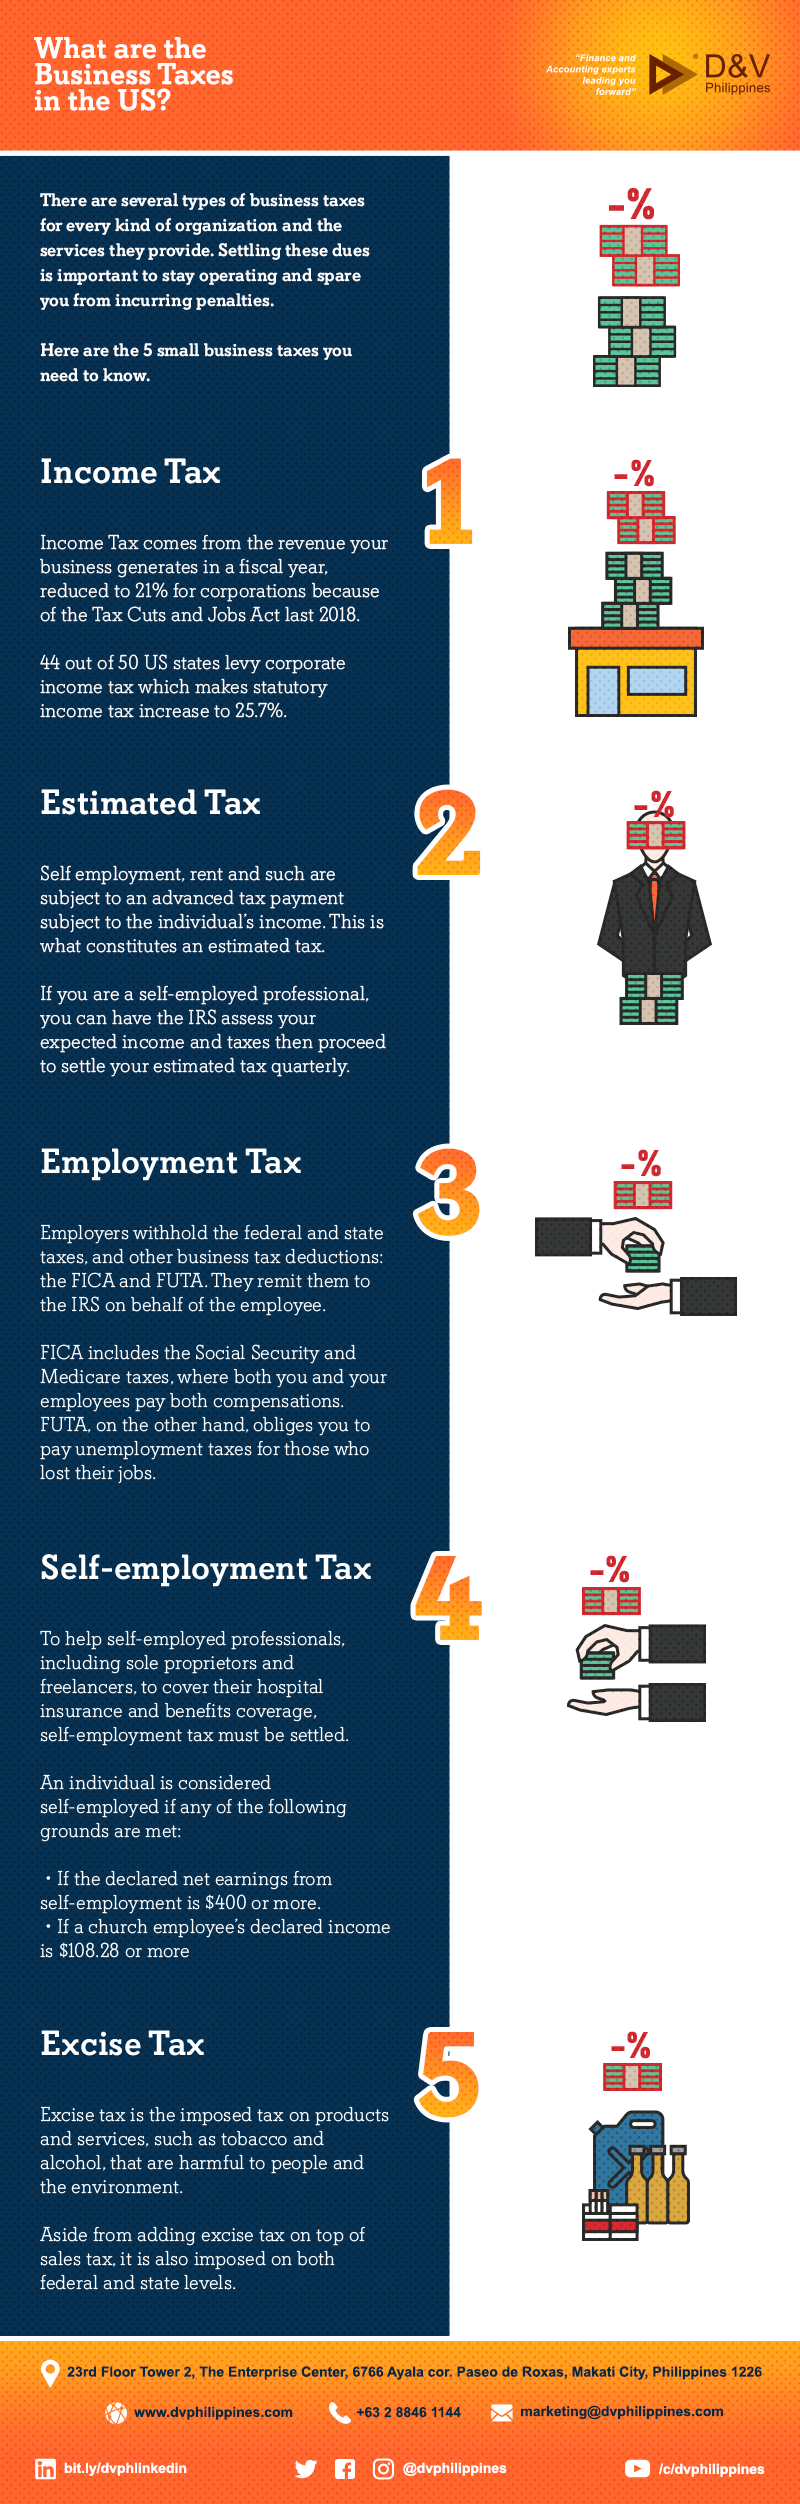 Infograpihcs_What-are-the-Business-Taxes-in-the-US_Main